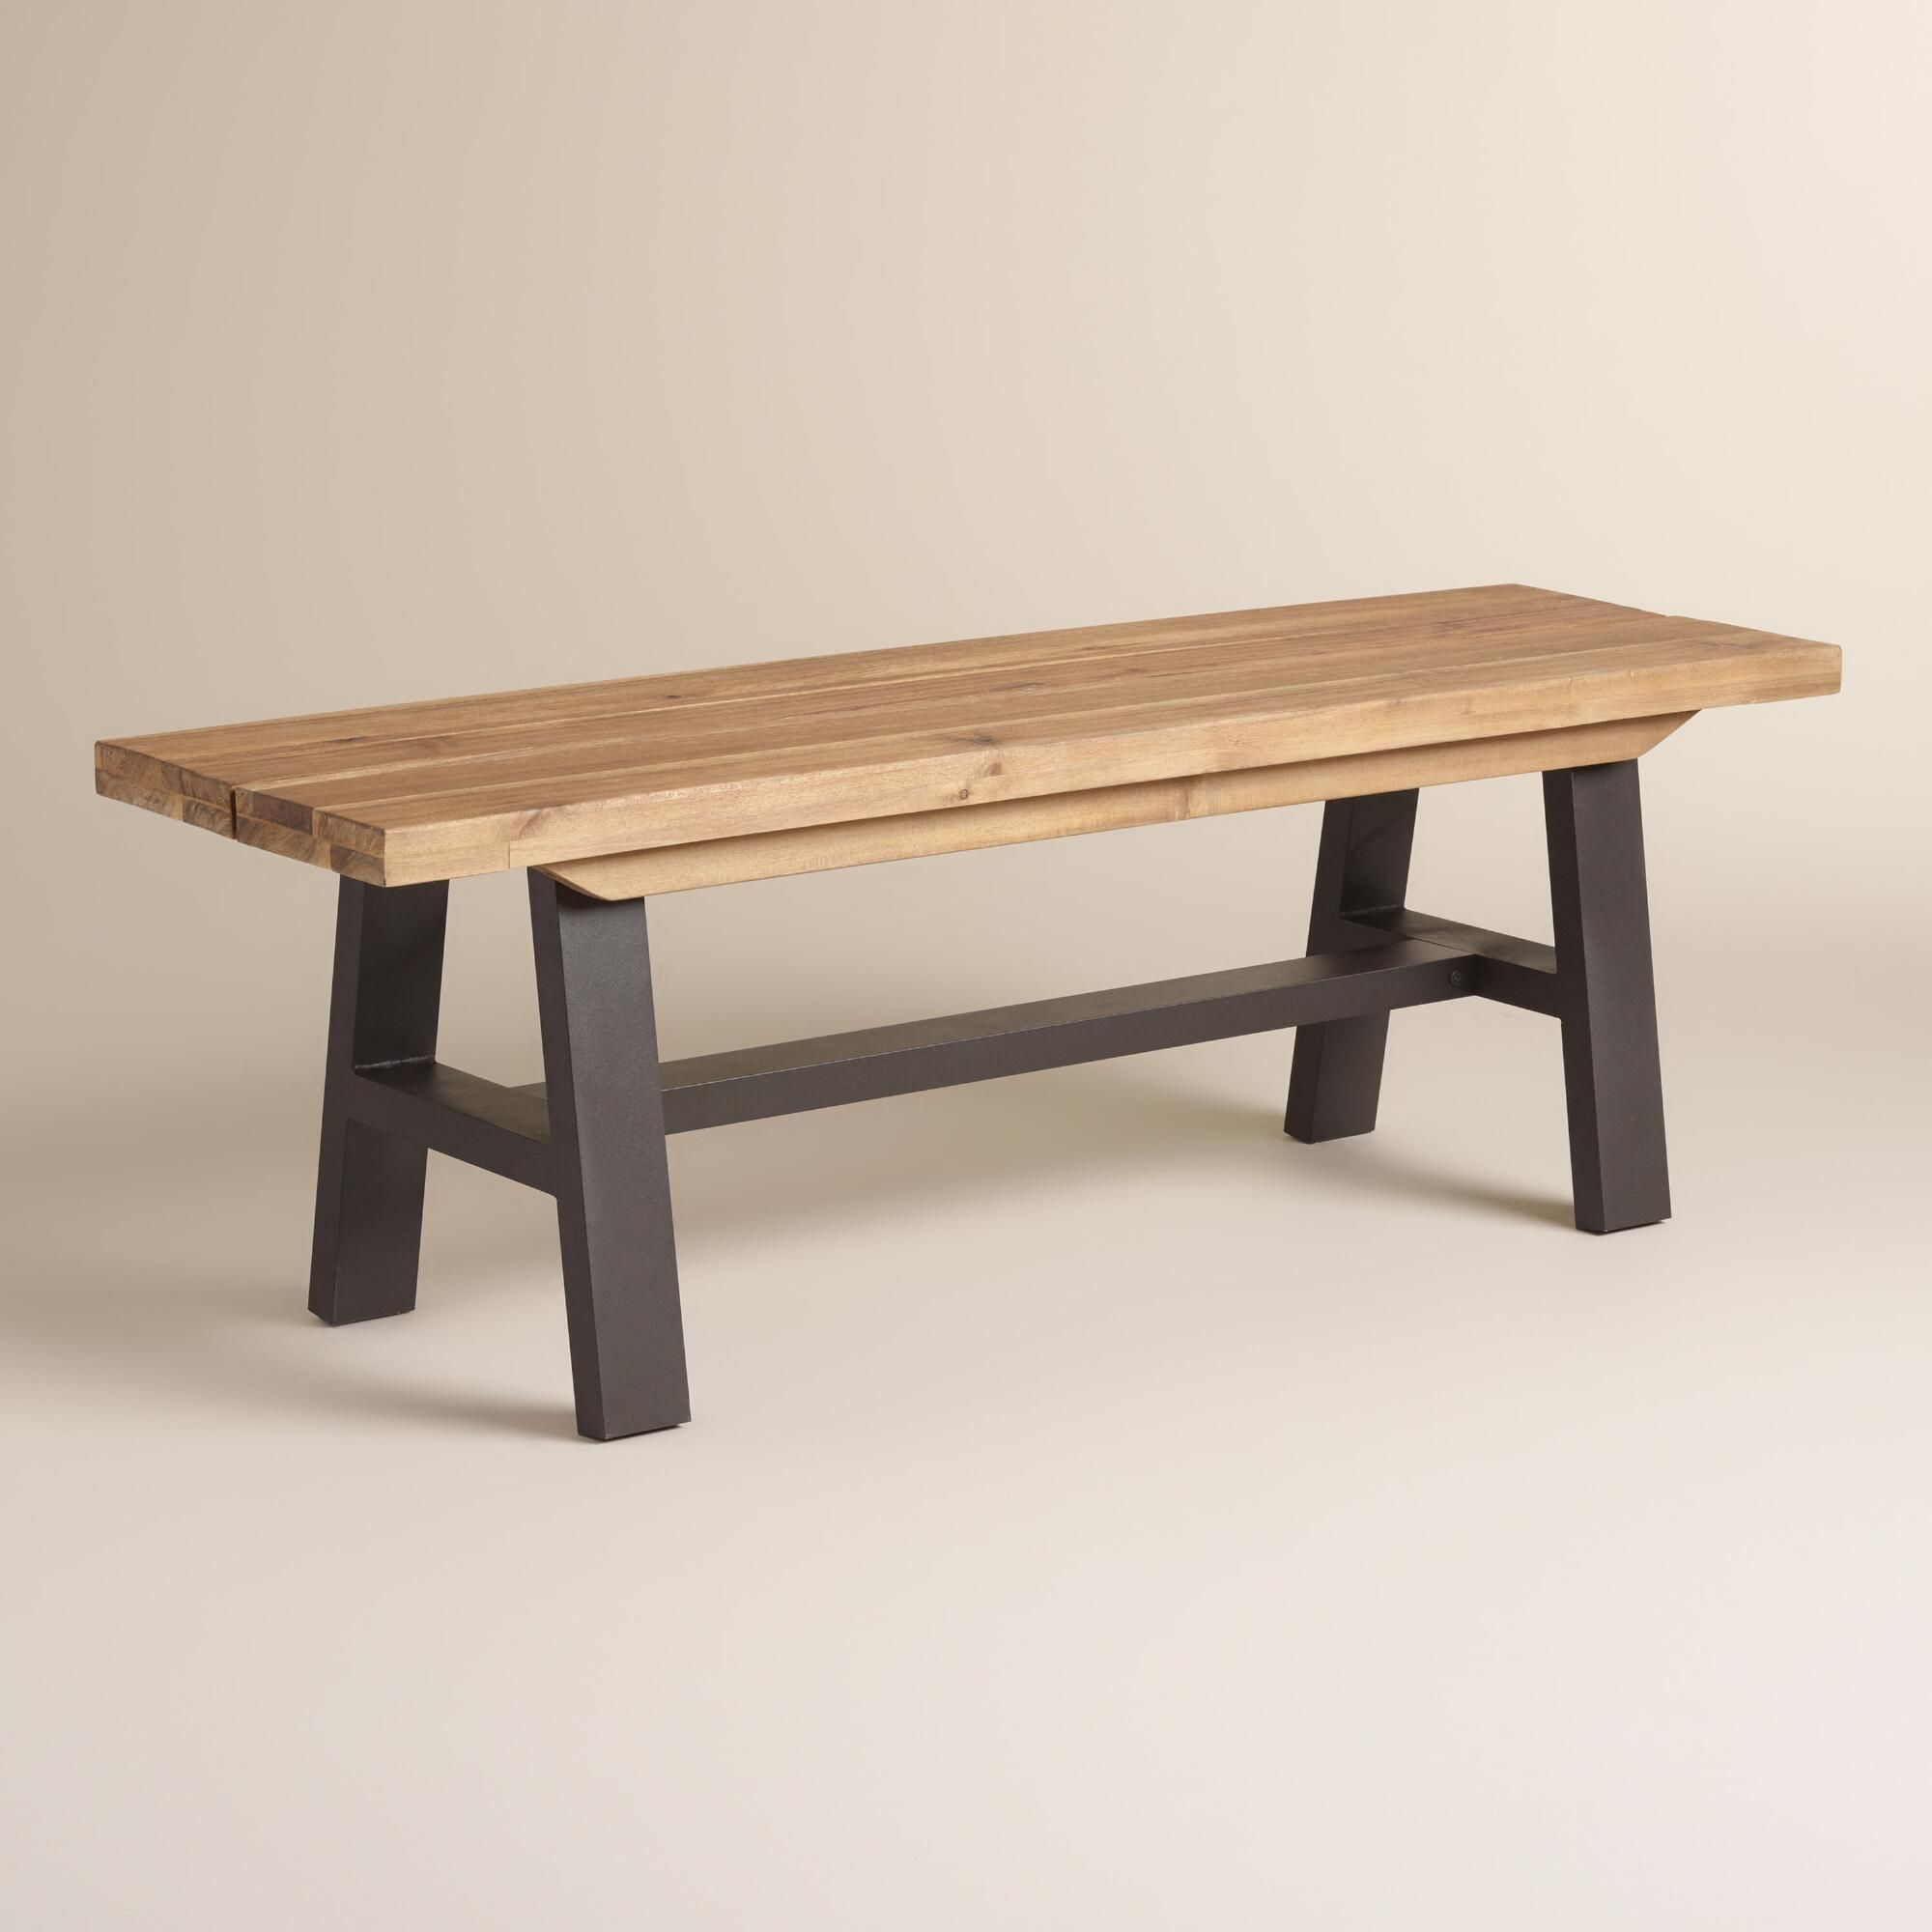 Enjoy Alfresco Meals Gathered On Our Rustic Dining Bench. It Features An  Aluminum A Frame